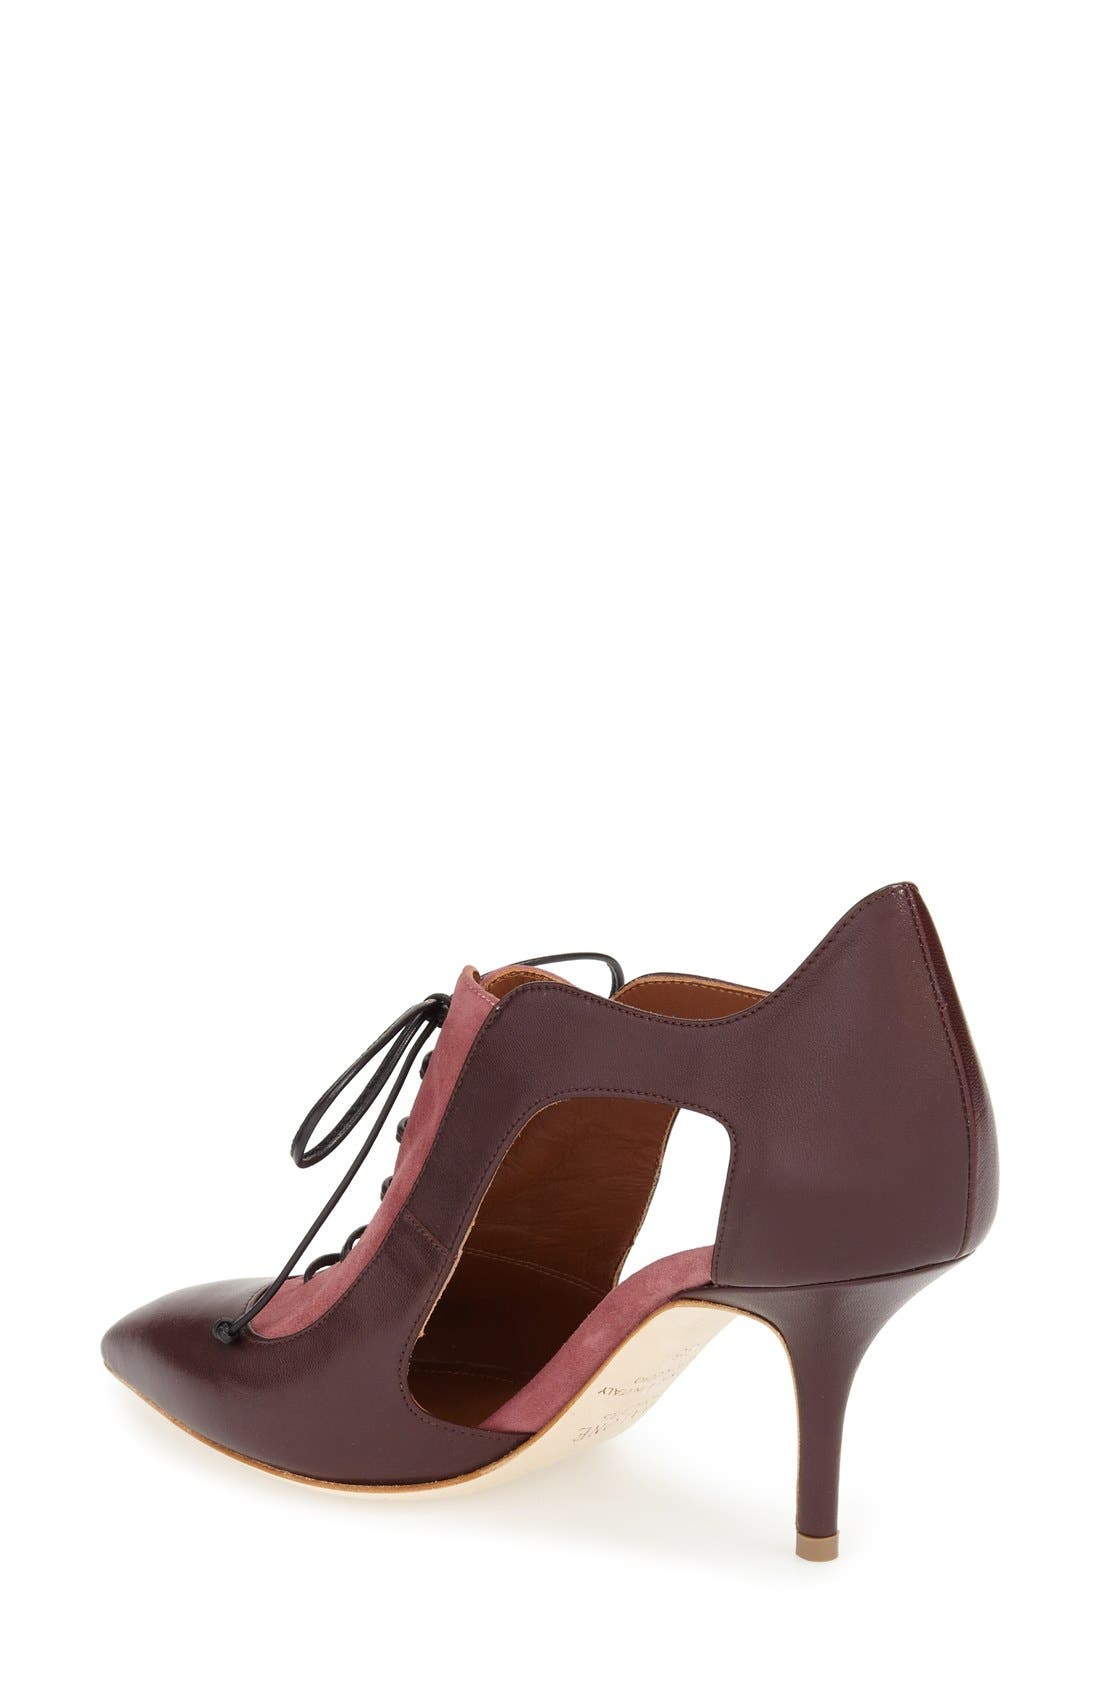 Alternate Image 3  - Malone Souliers 'Lorraine' Lace-Up Pump (Women)